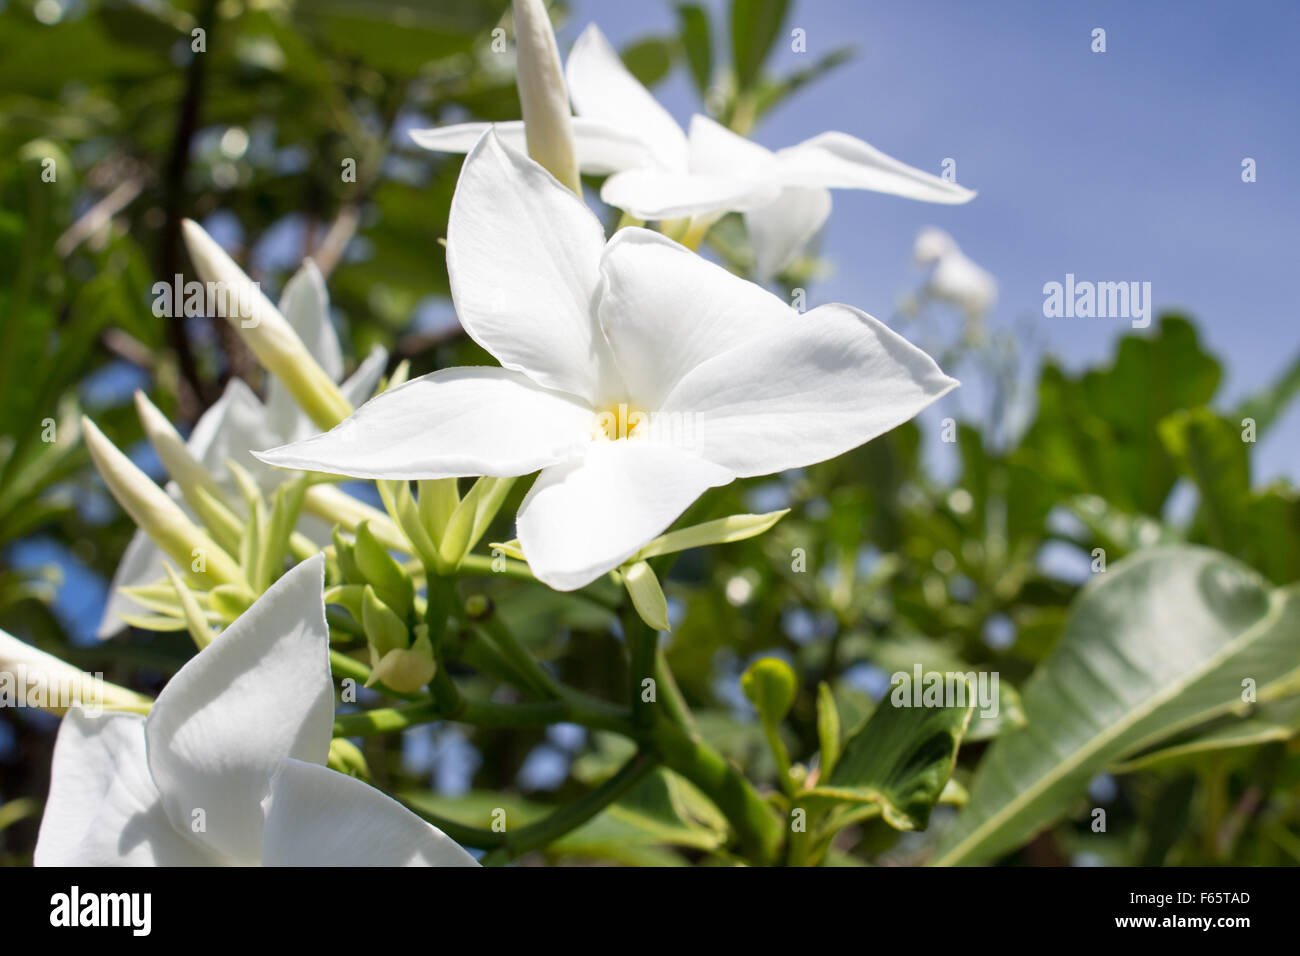 champa flower background - Stock Image